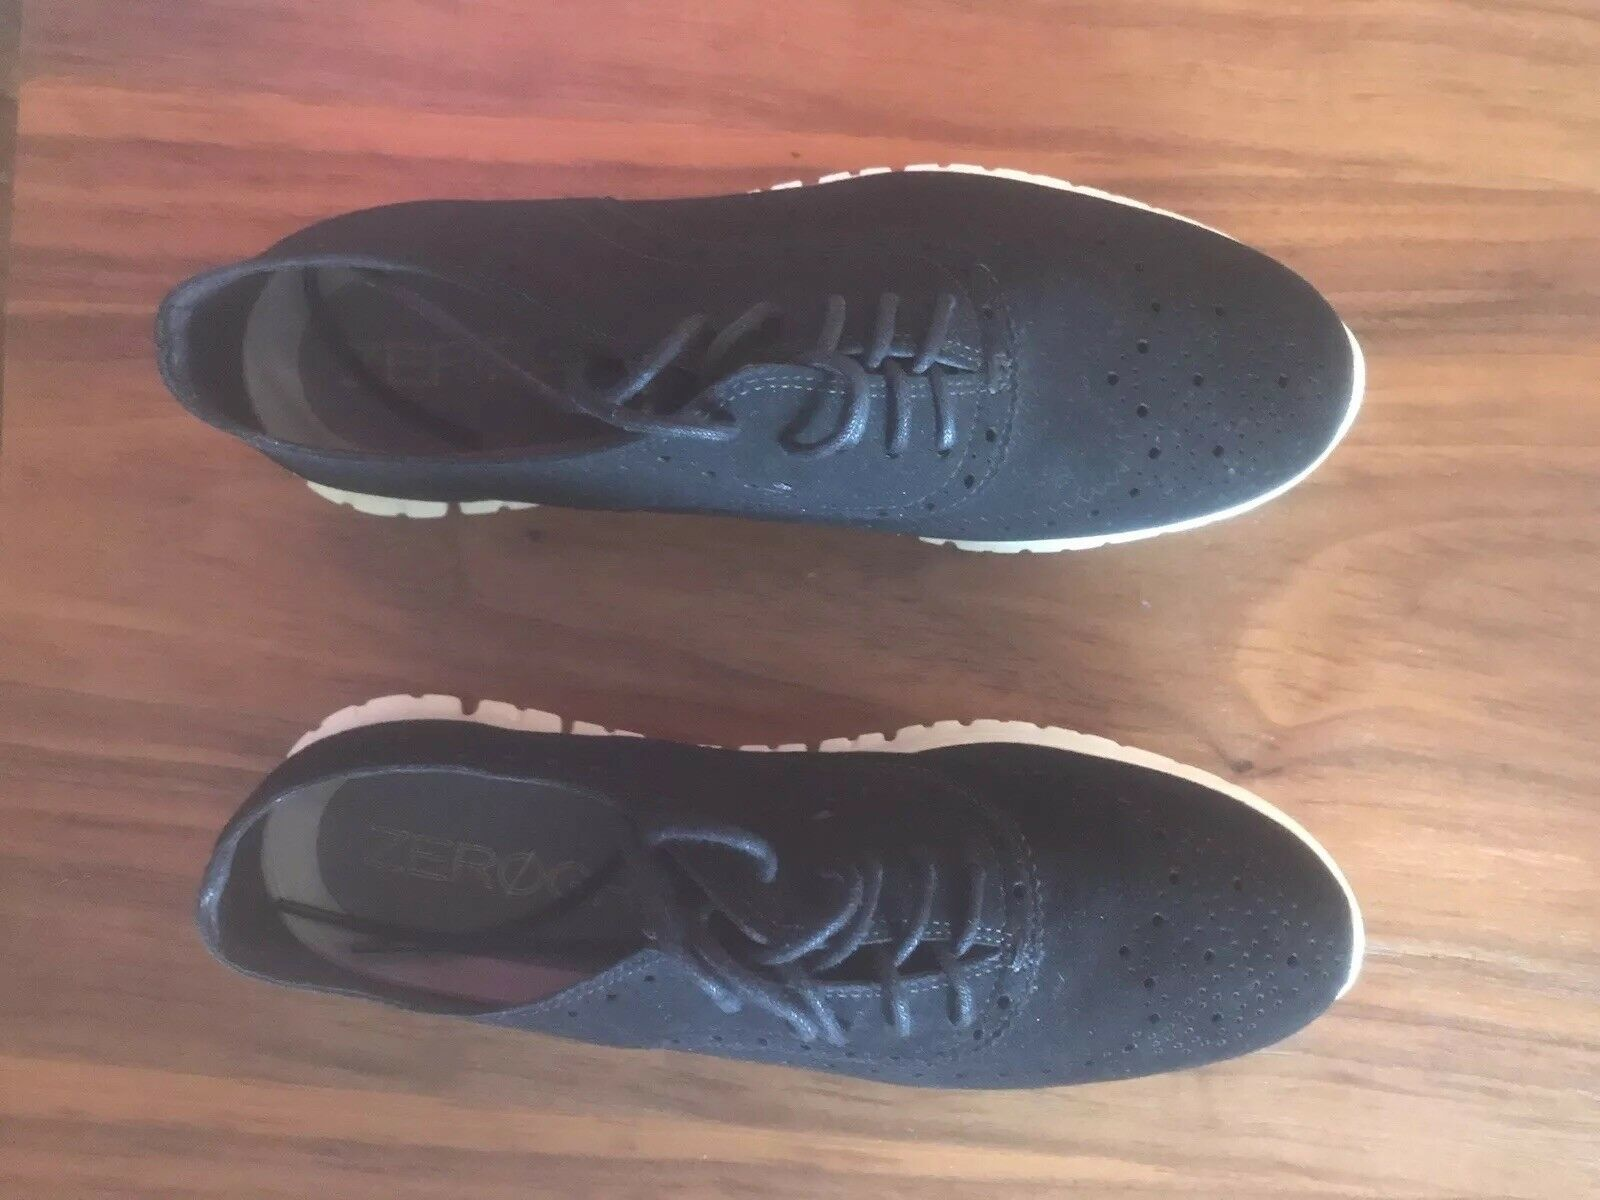 Cole Haan Zerogrand Wingtip Oxford Oxford Oxford Black Suede 8 D44060 53bbd9